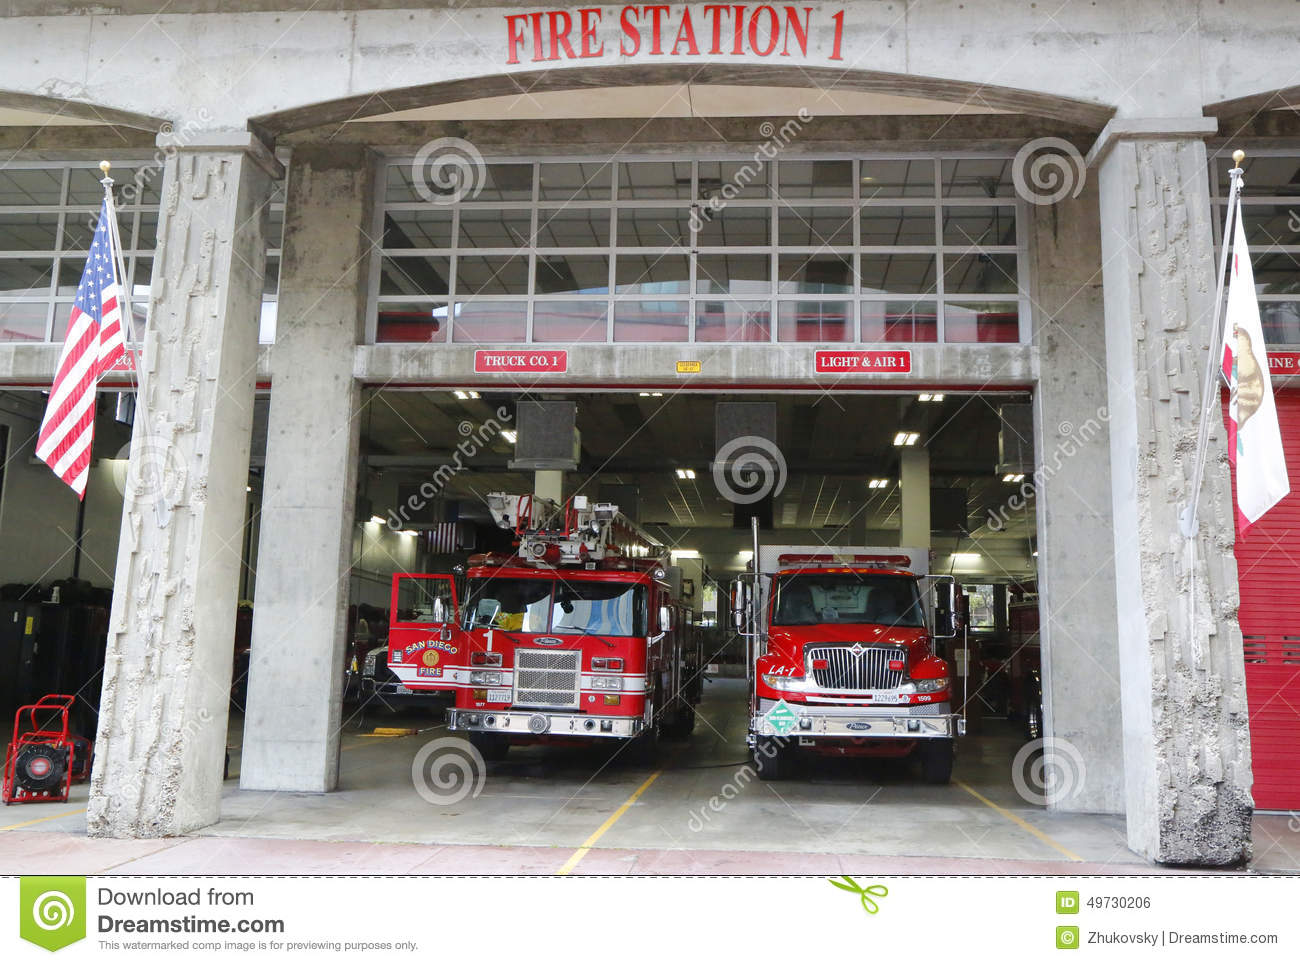 Diego fire rescue department fire station 1 in san diego california